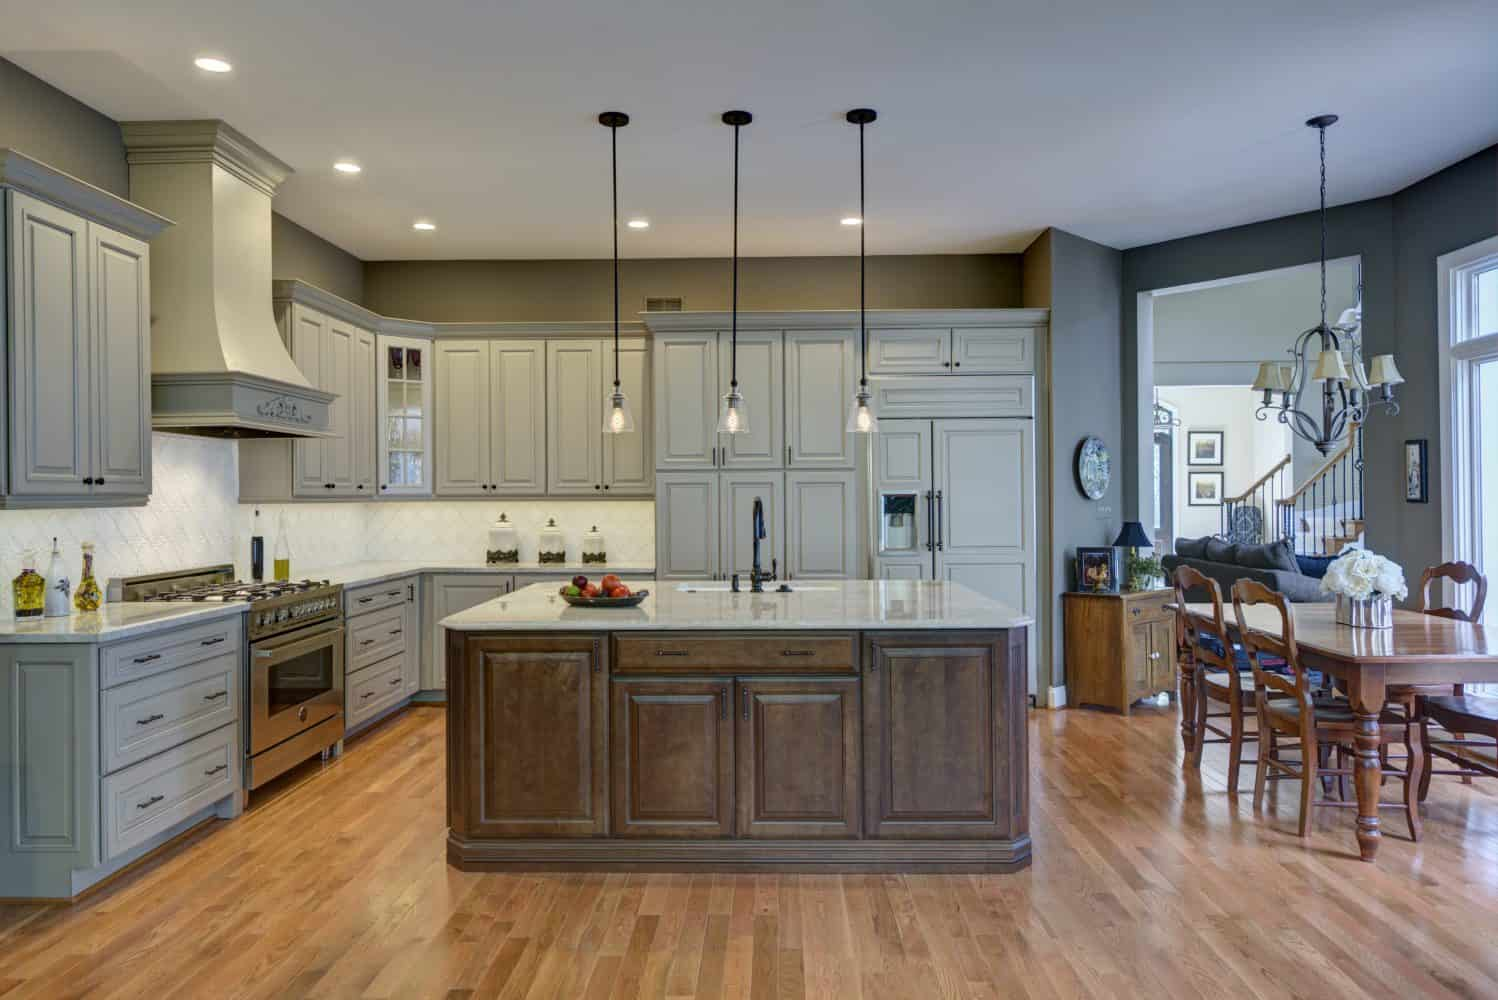 Captivating As An Experienced Design/build Firm In Northern Virginia, We Evaluate How  You Want To Use The Space, And Work With You On Concepts, Renderings,  Design, ...